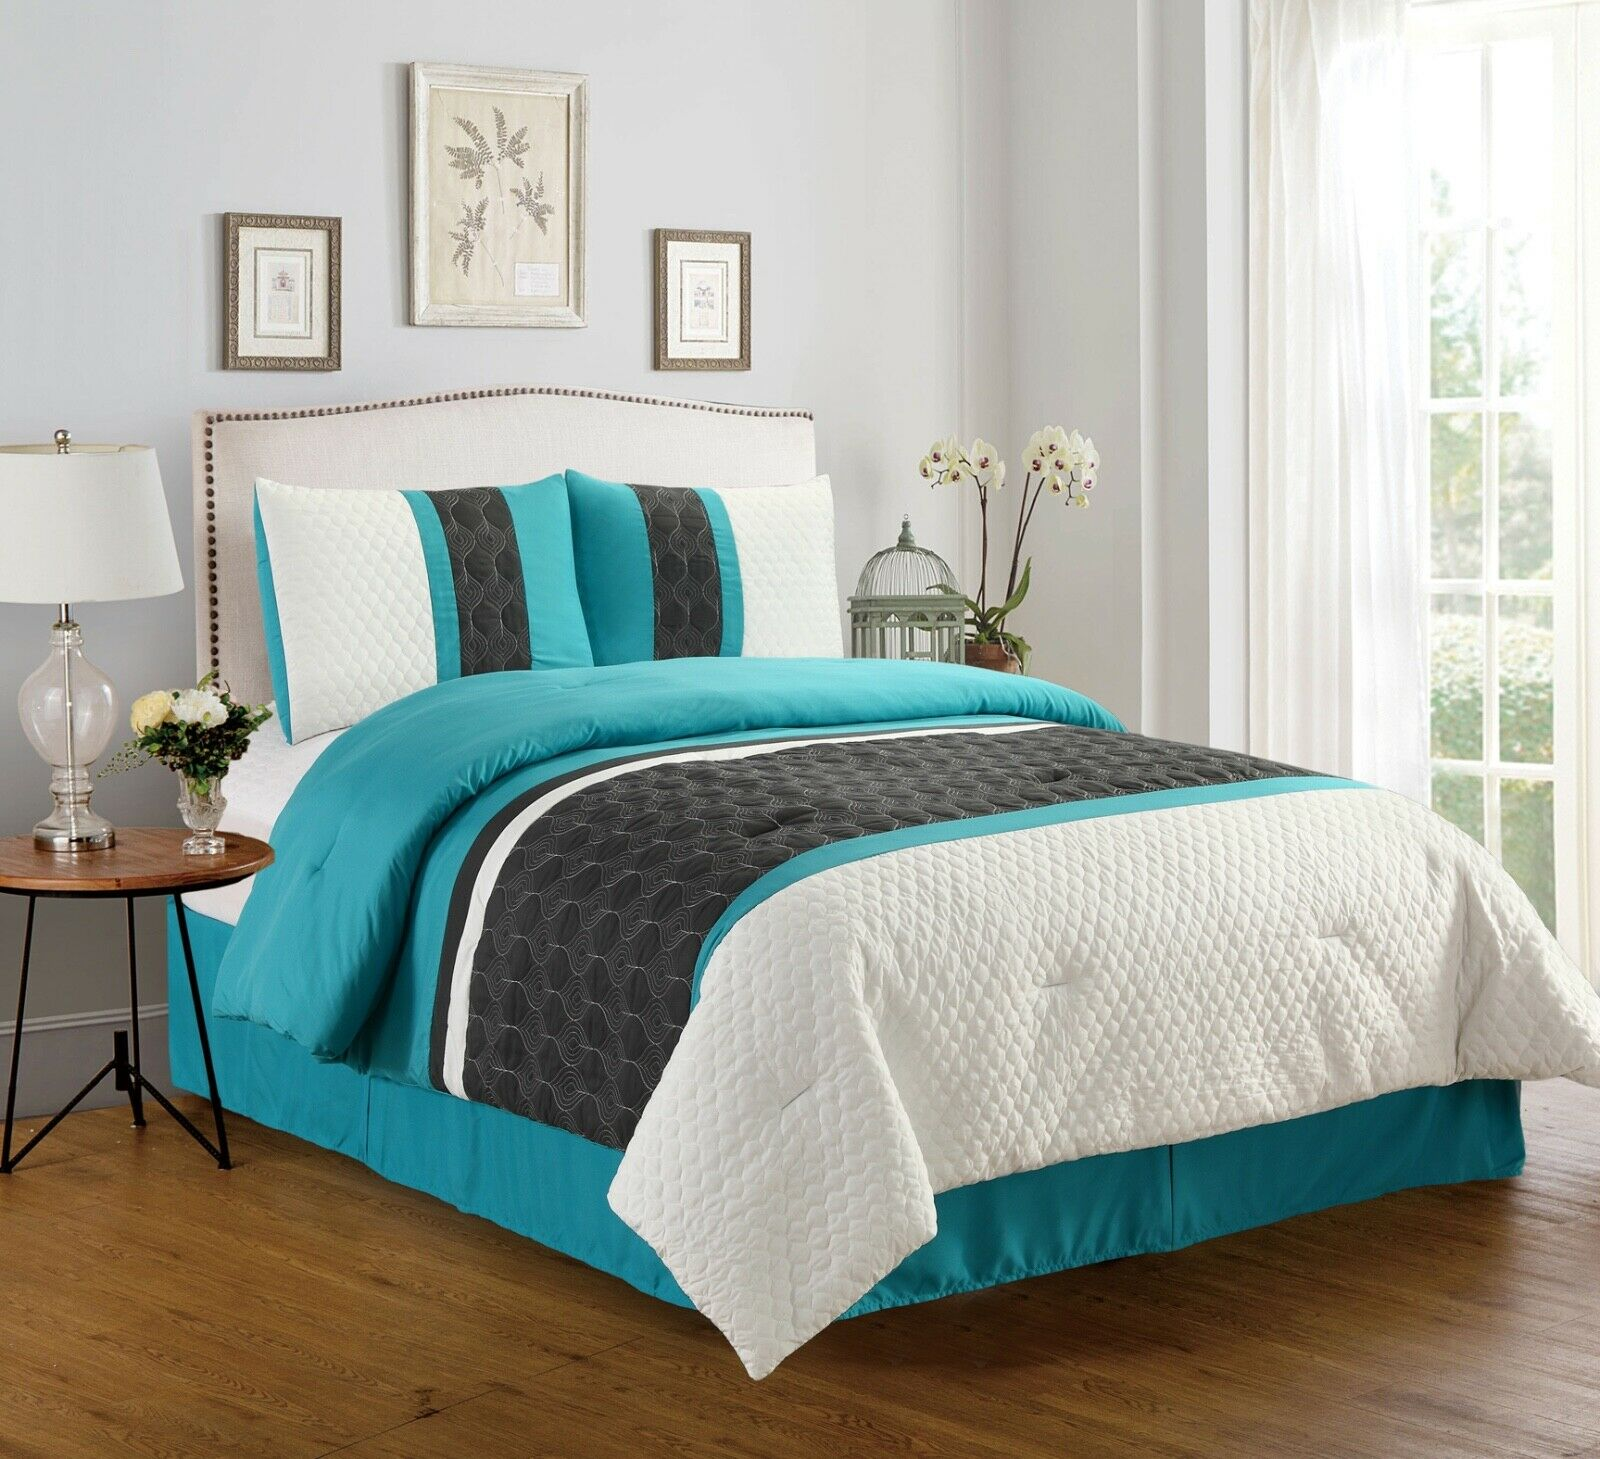 Enas Embossed 4-Piece Comforter Set Bedding - Teal & Gray